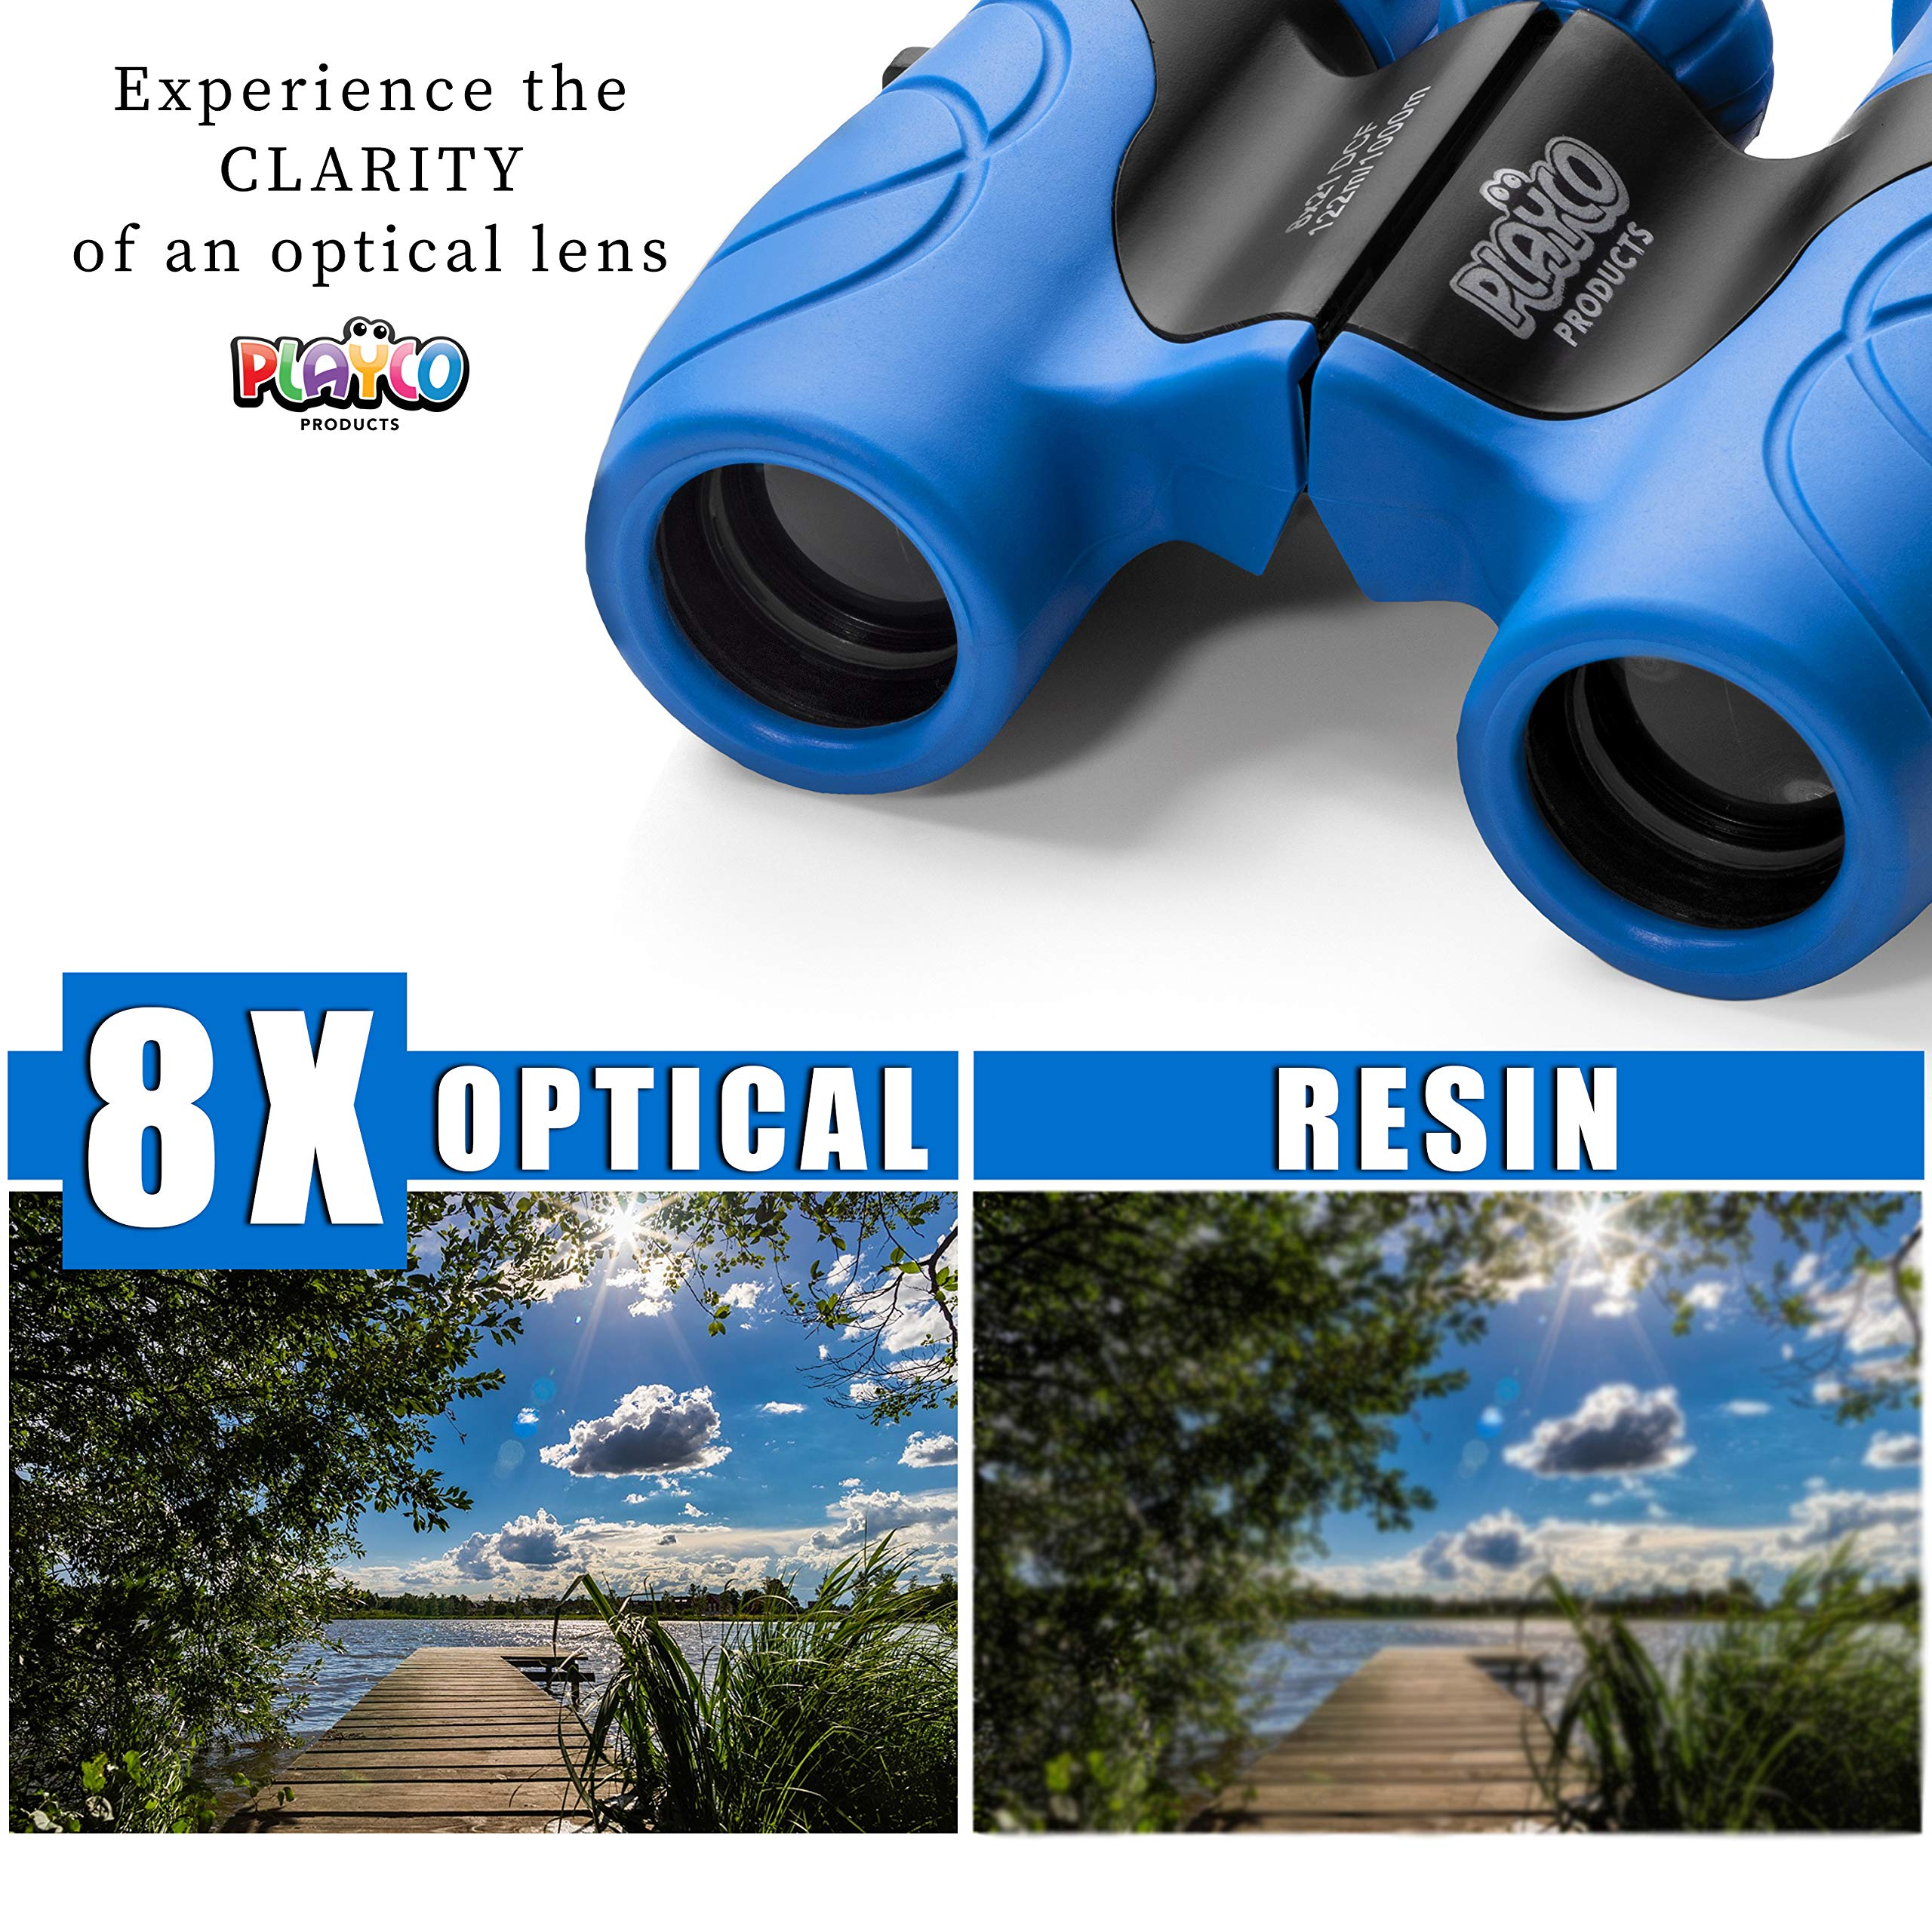 Playco Walkie Talkies and Binoculars for Kids - 2 Mile Range, Crystal Clear Sound, 8X21 Optical Lens by Playco (Image #5)